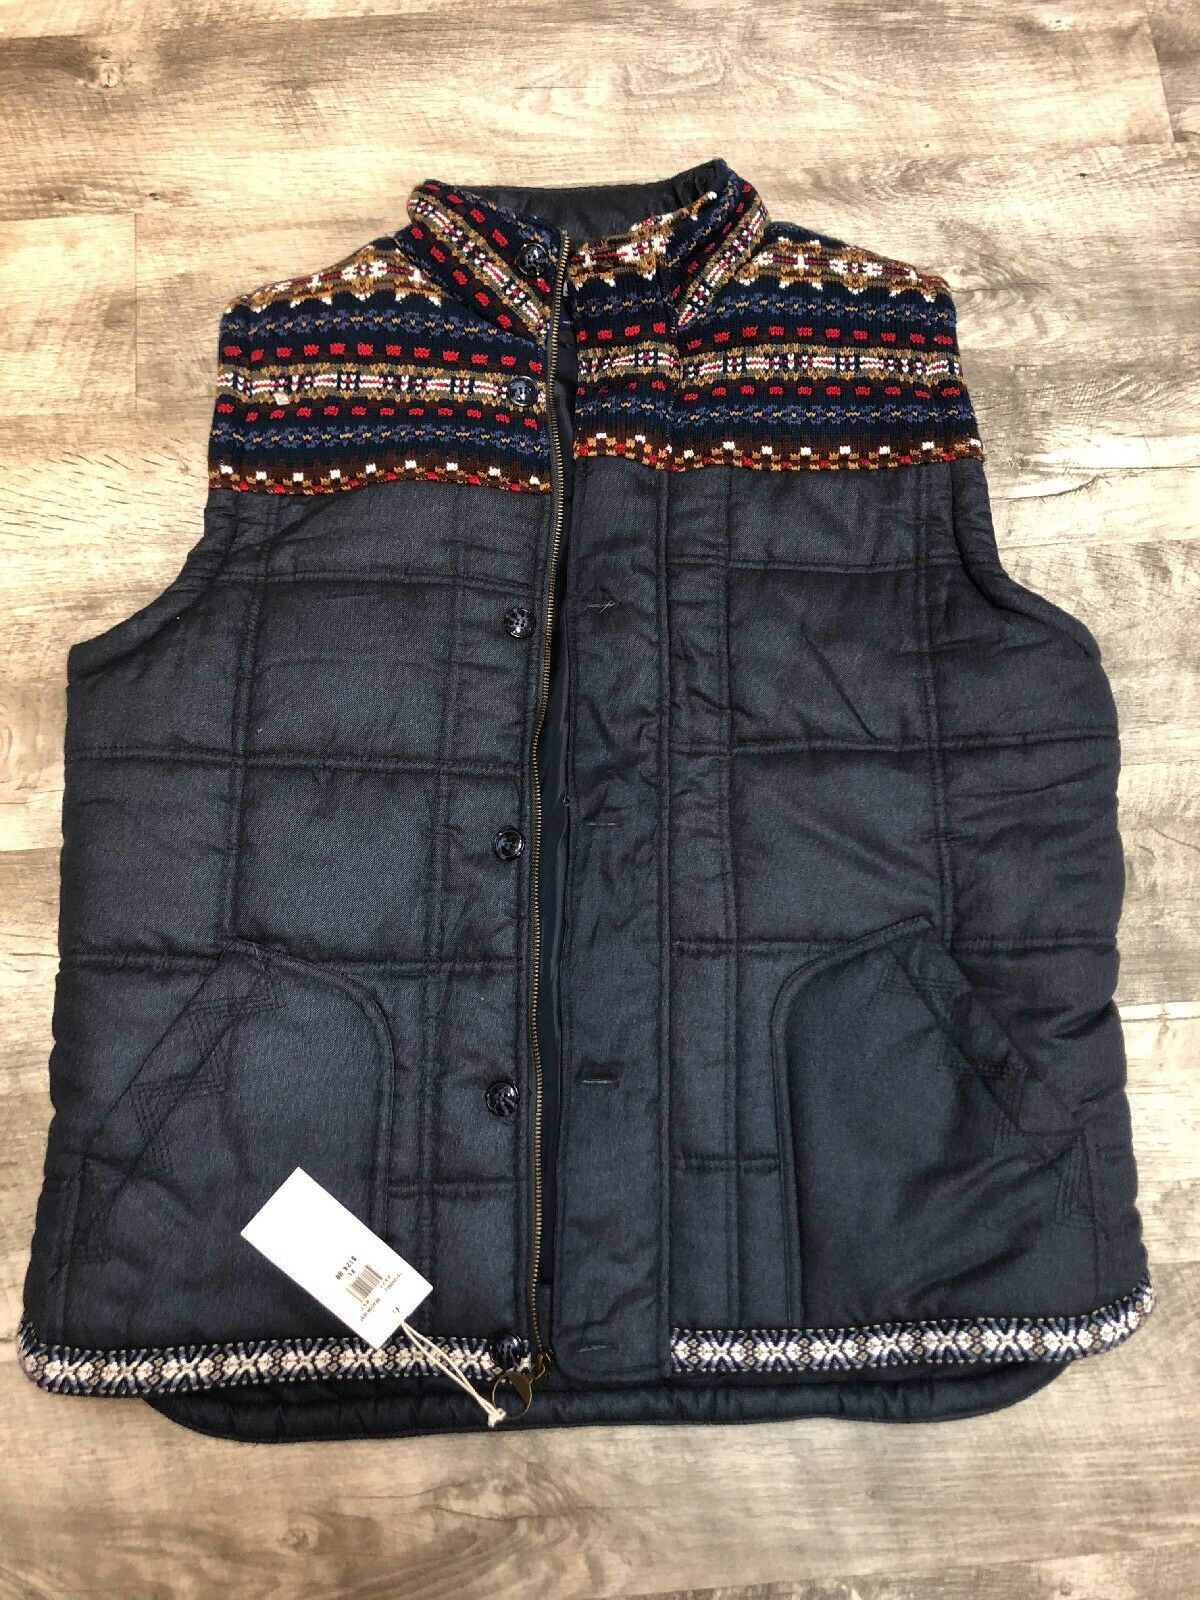 STAPLE NAVY blueE VEST SIZE XL- original price 124.00